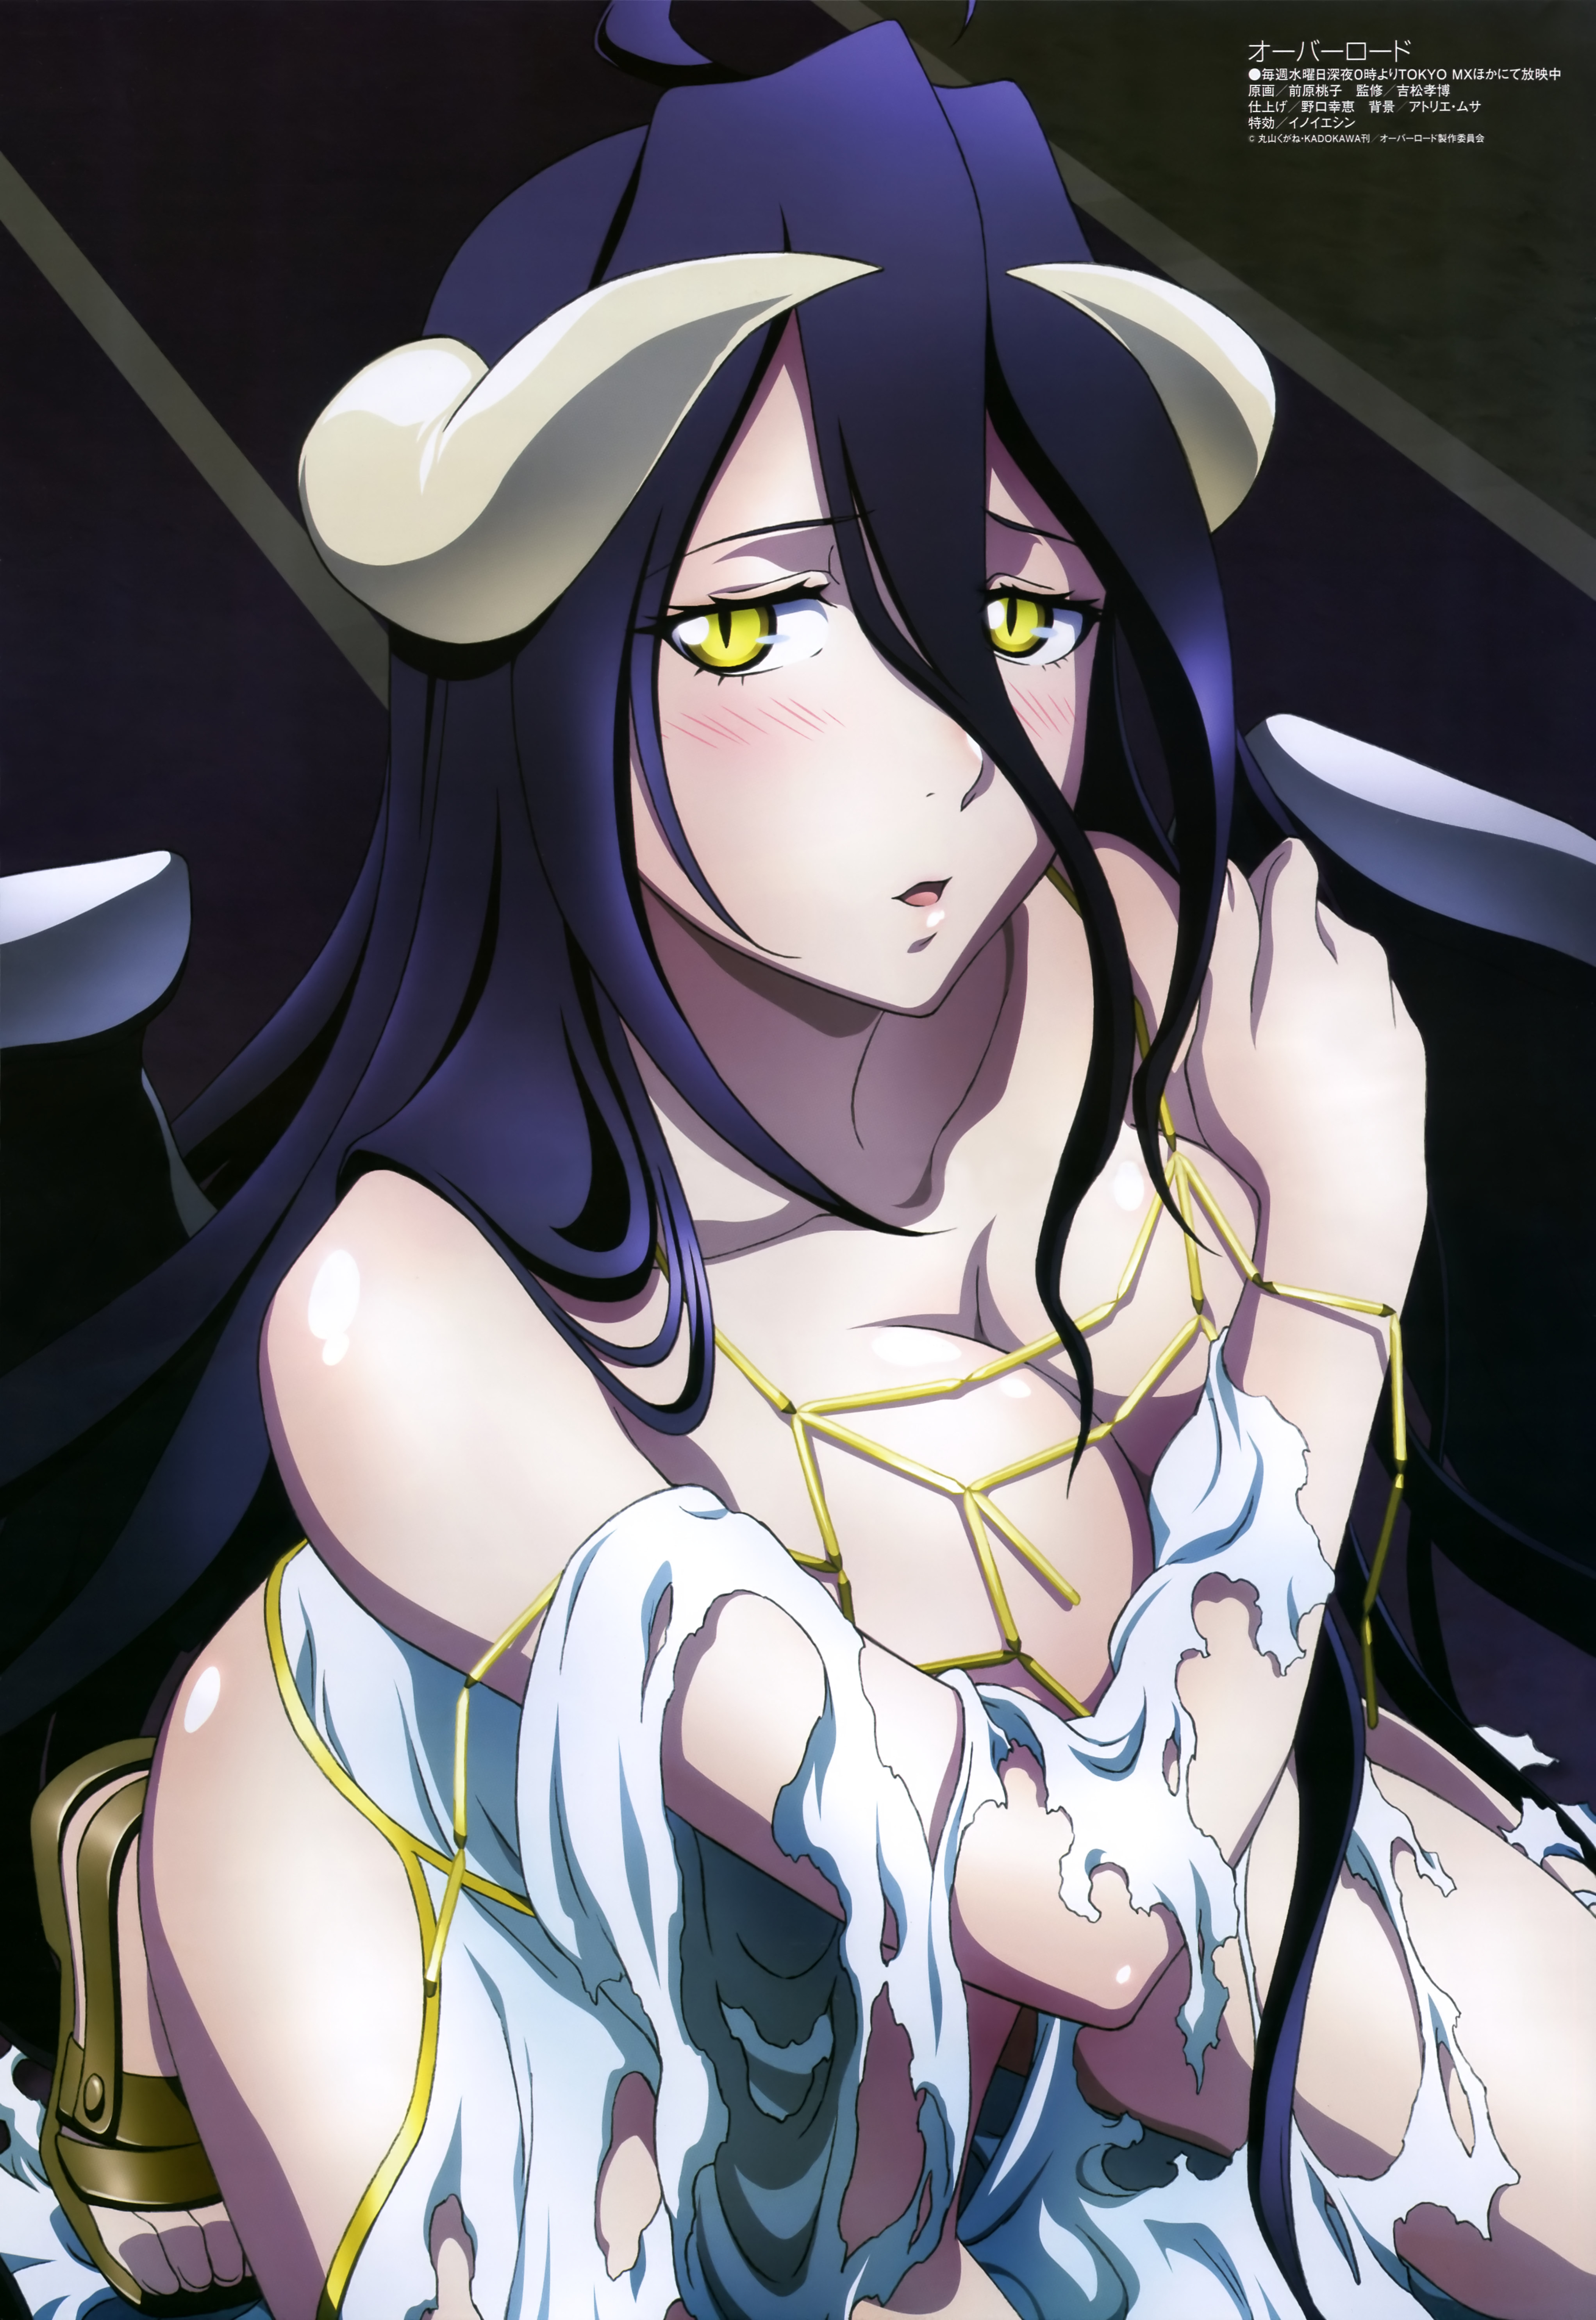 Albedo Is Very Horny in This New Poster Visual